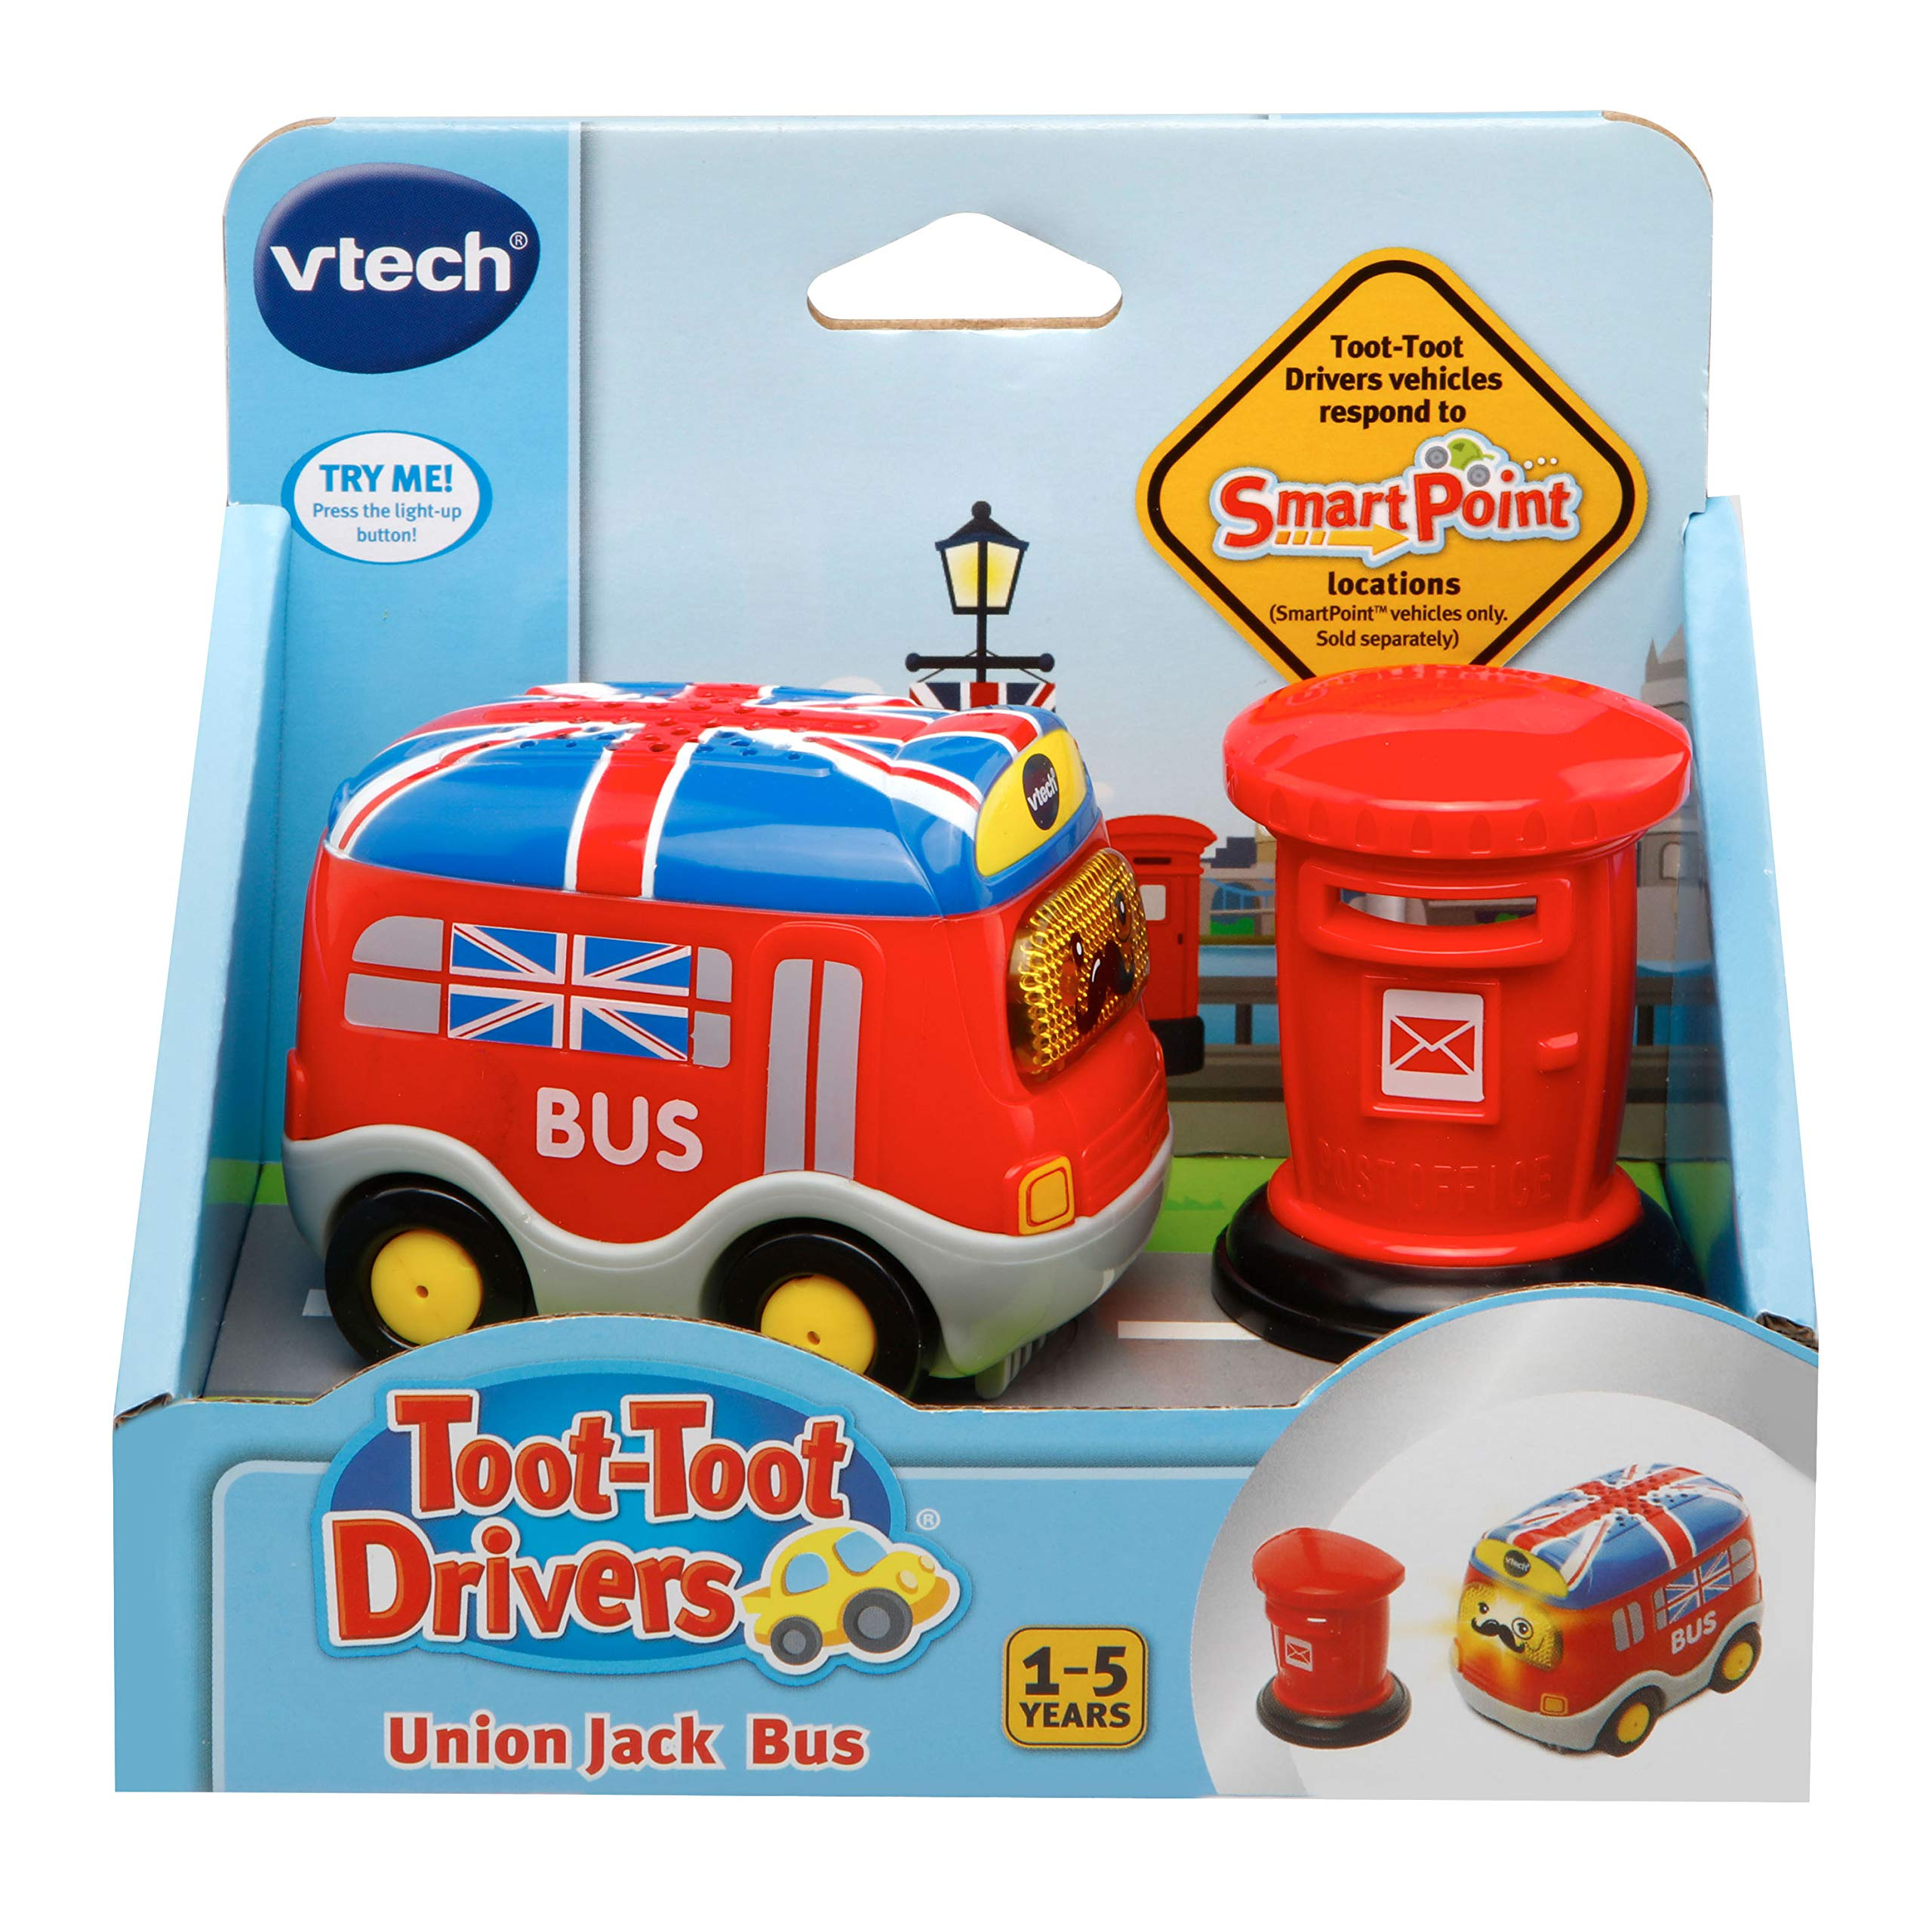 VTech Baby Toot-Toot Drivers Union Jack Bus Toy (Dispatched From UK) by VTech